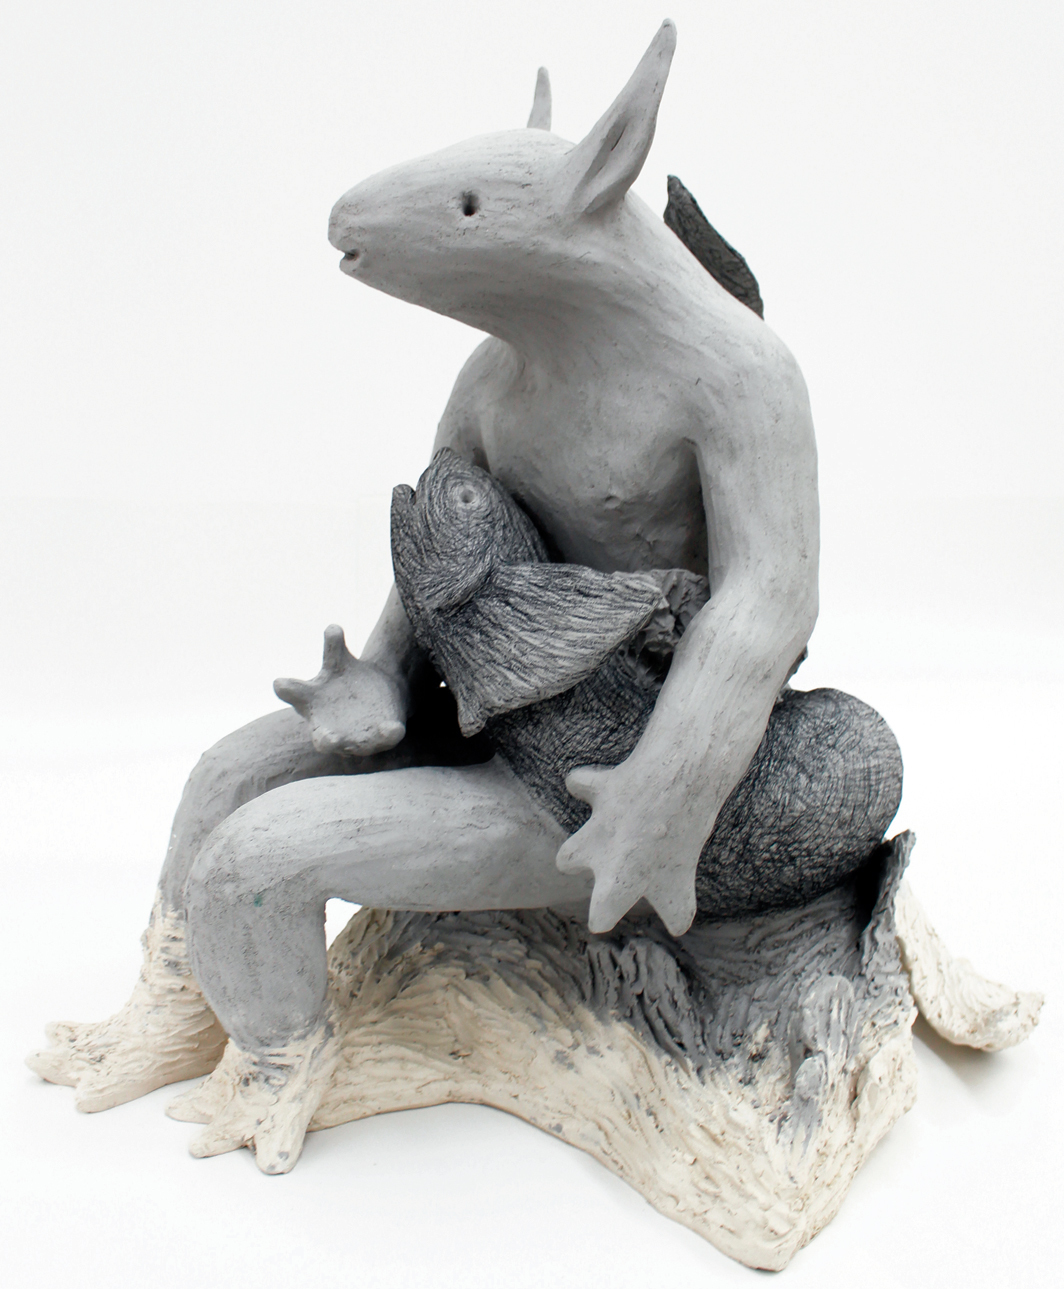 "Elsa Guillaume, Tritons VIII, 2020, ceramic, 21 1/4 × 17 3/4 × 25 1/2"". From the series ""Tritons,"" 2020."